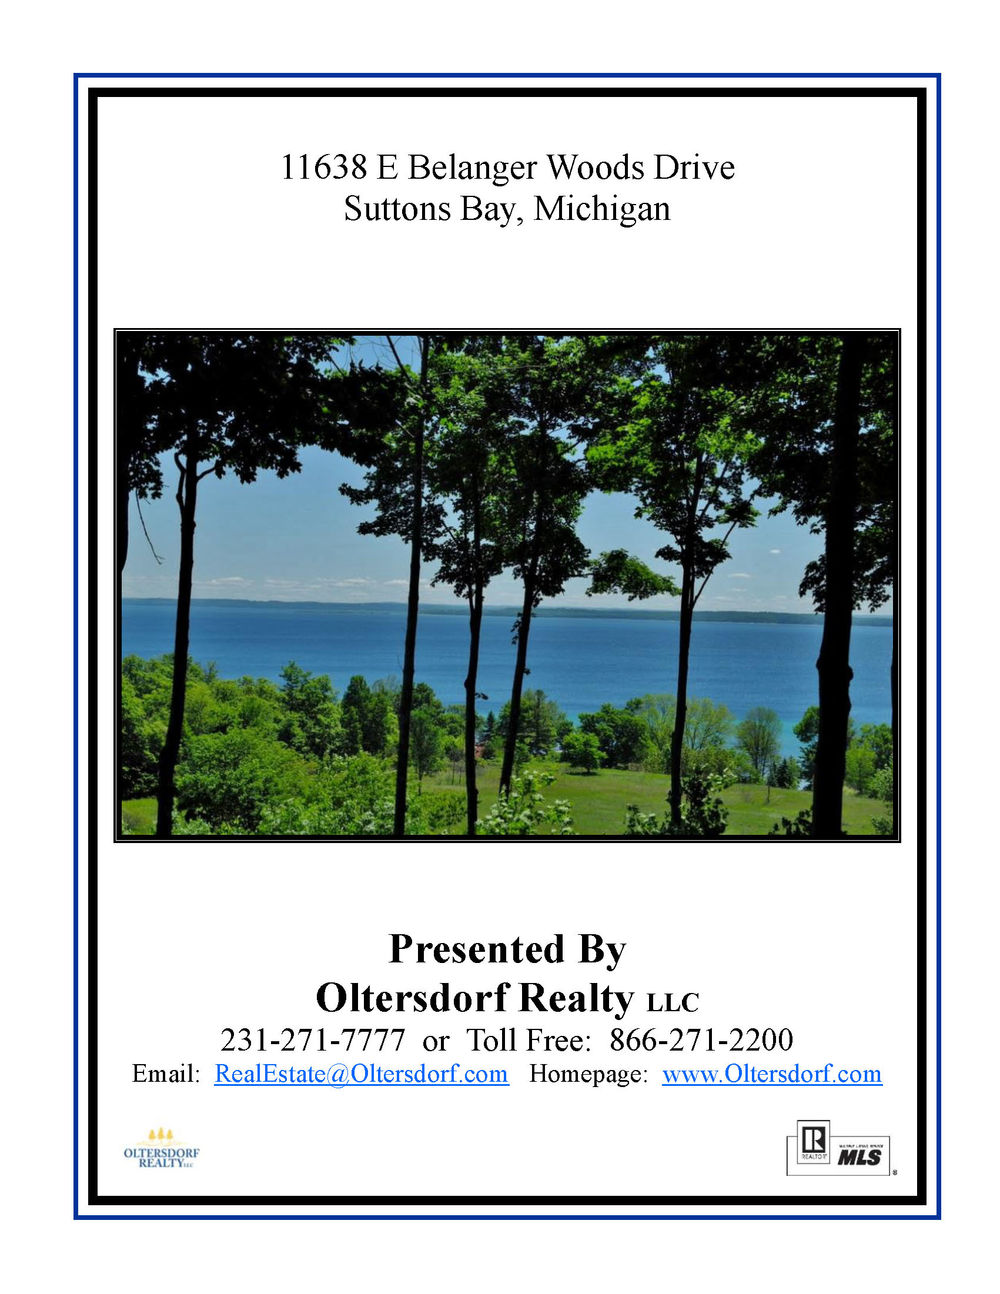 11638 E Belanger Woods Drive, Suttons Bay, MI, Leelanau County vacant land with water views of Grand traverse Bay, for sale by Oltersdorf Realty LLC, Leelanau County Realtors Vicky & Jonathan Oltersdorf marketing packe (24).jpg